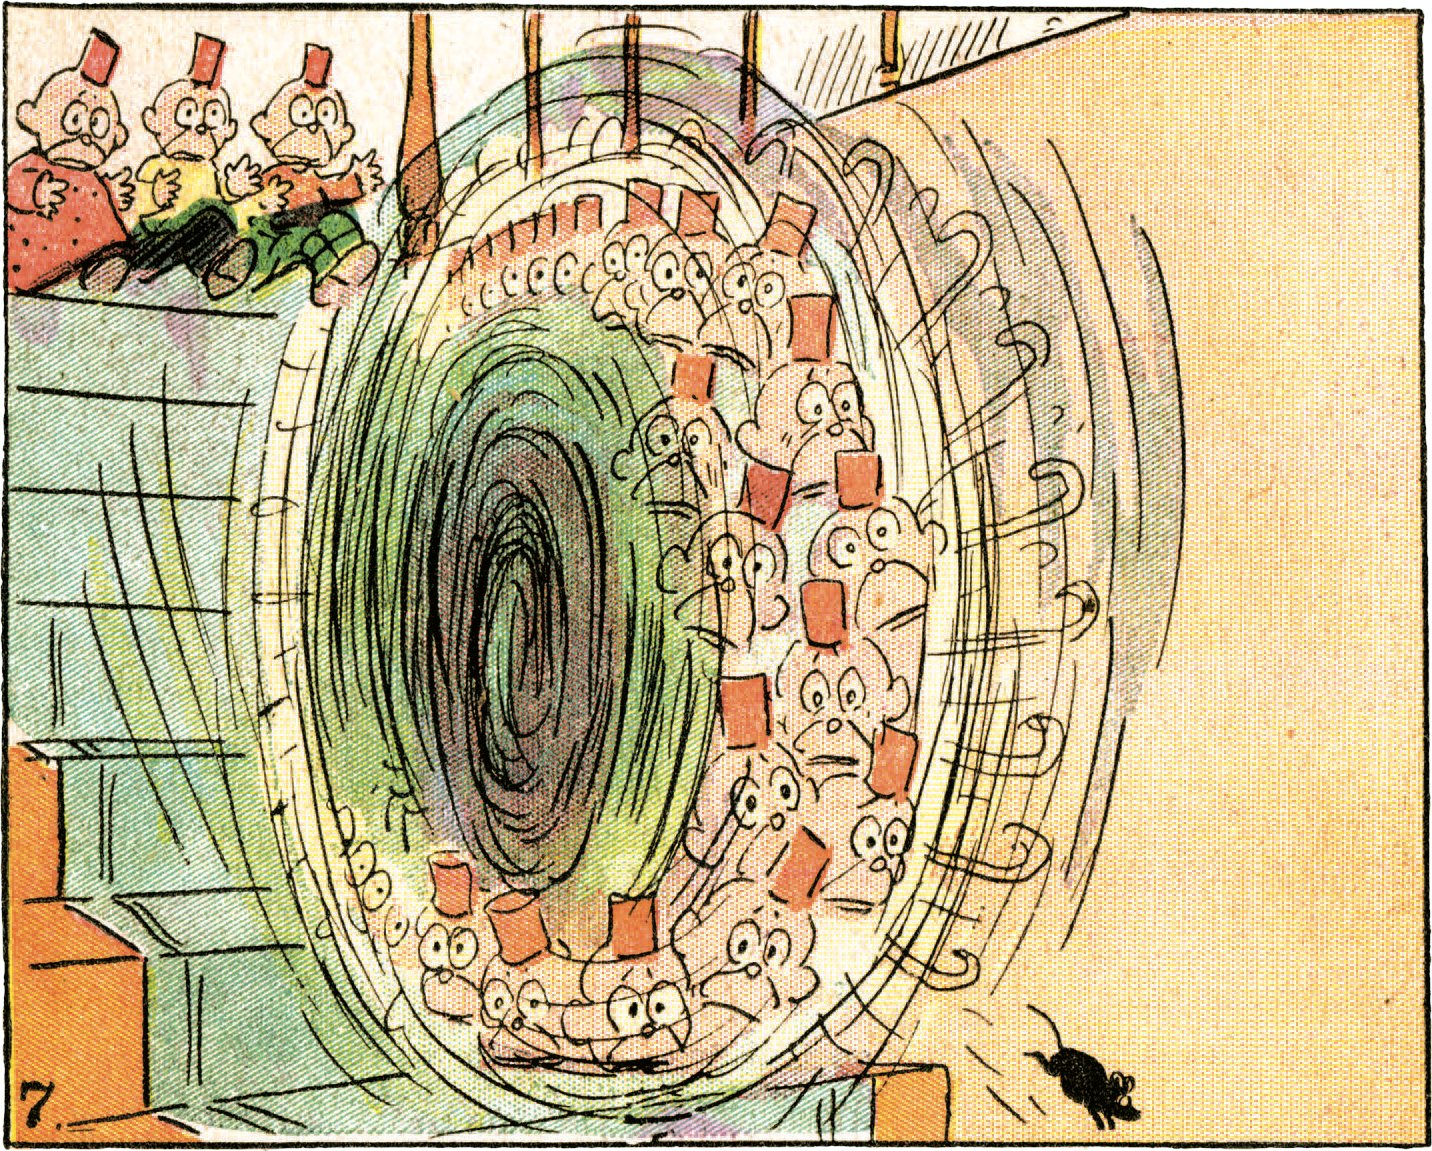 A panel from Happy Hooligan by Frederick Burr Opper